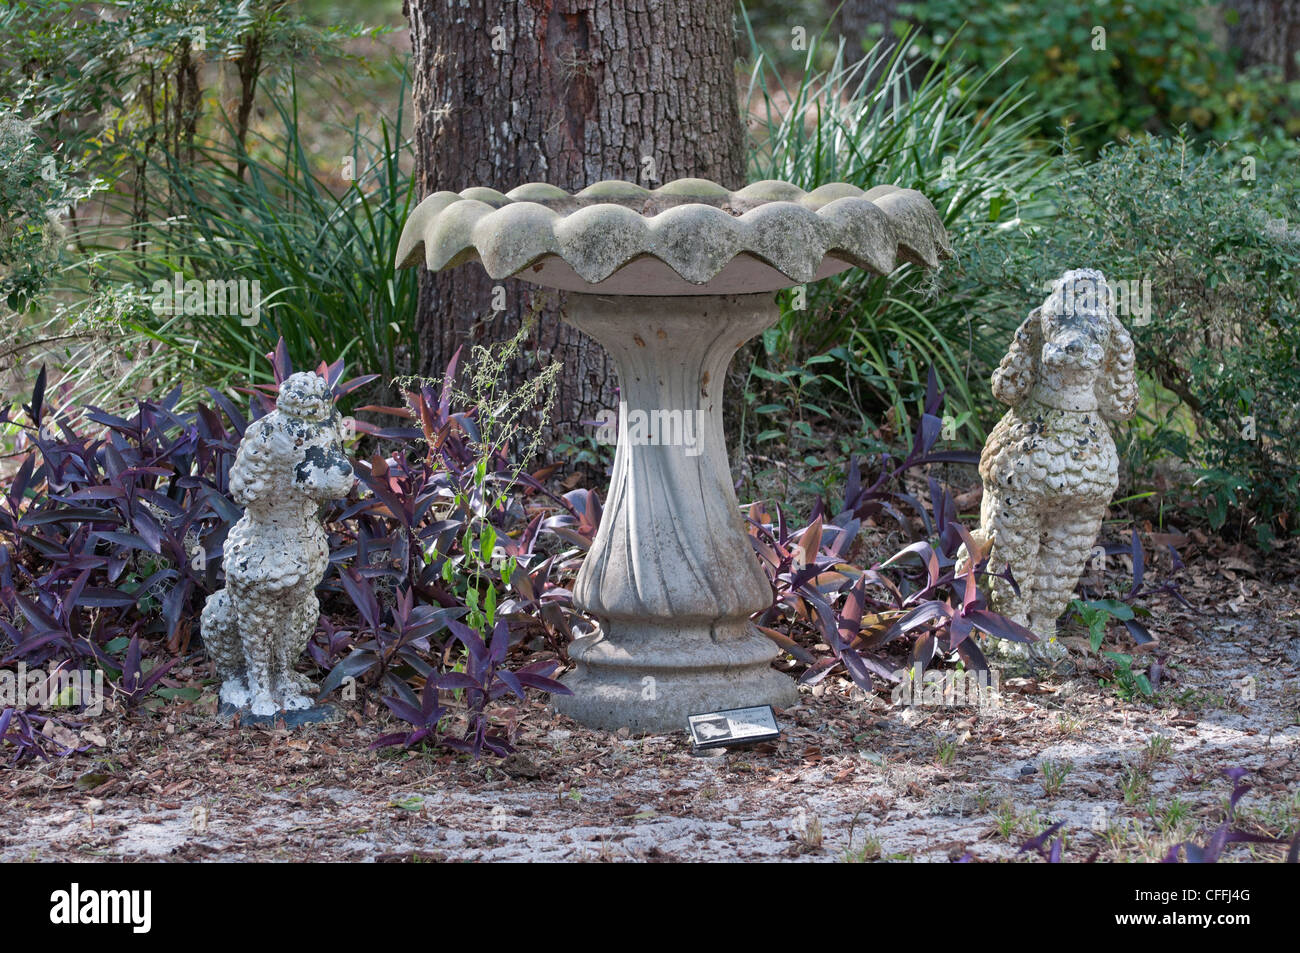 The Garden of Love pet memorial park and cemetery in Micanopy, Florida. Stock Photo